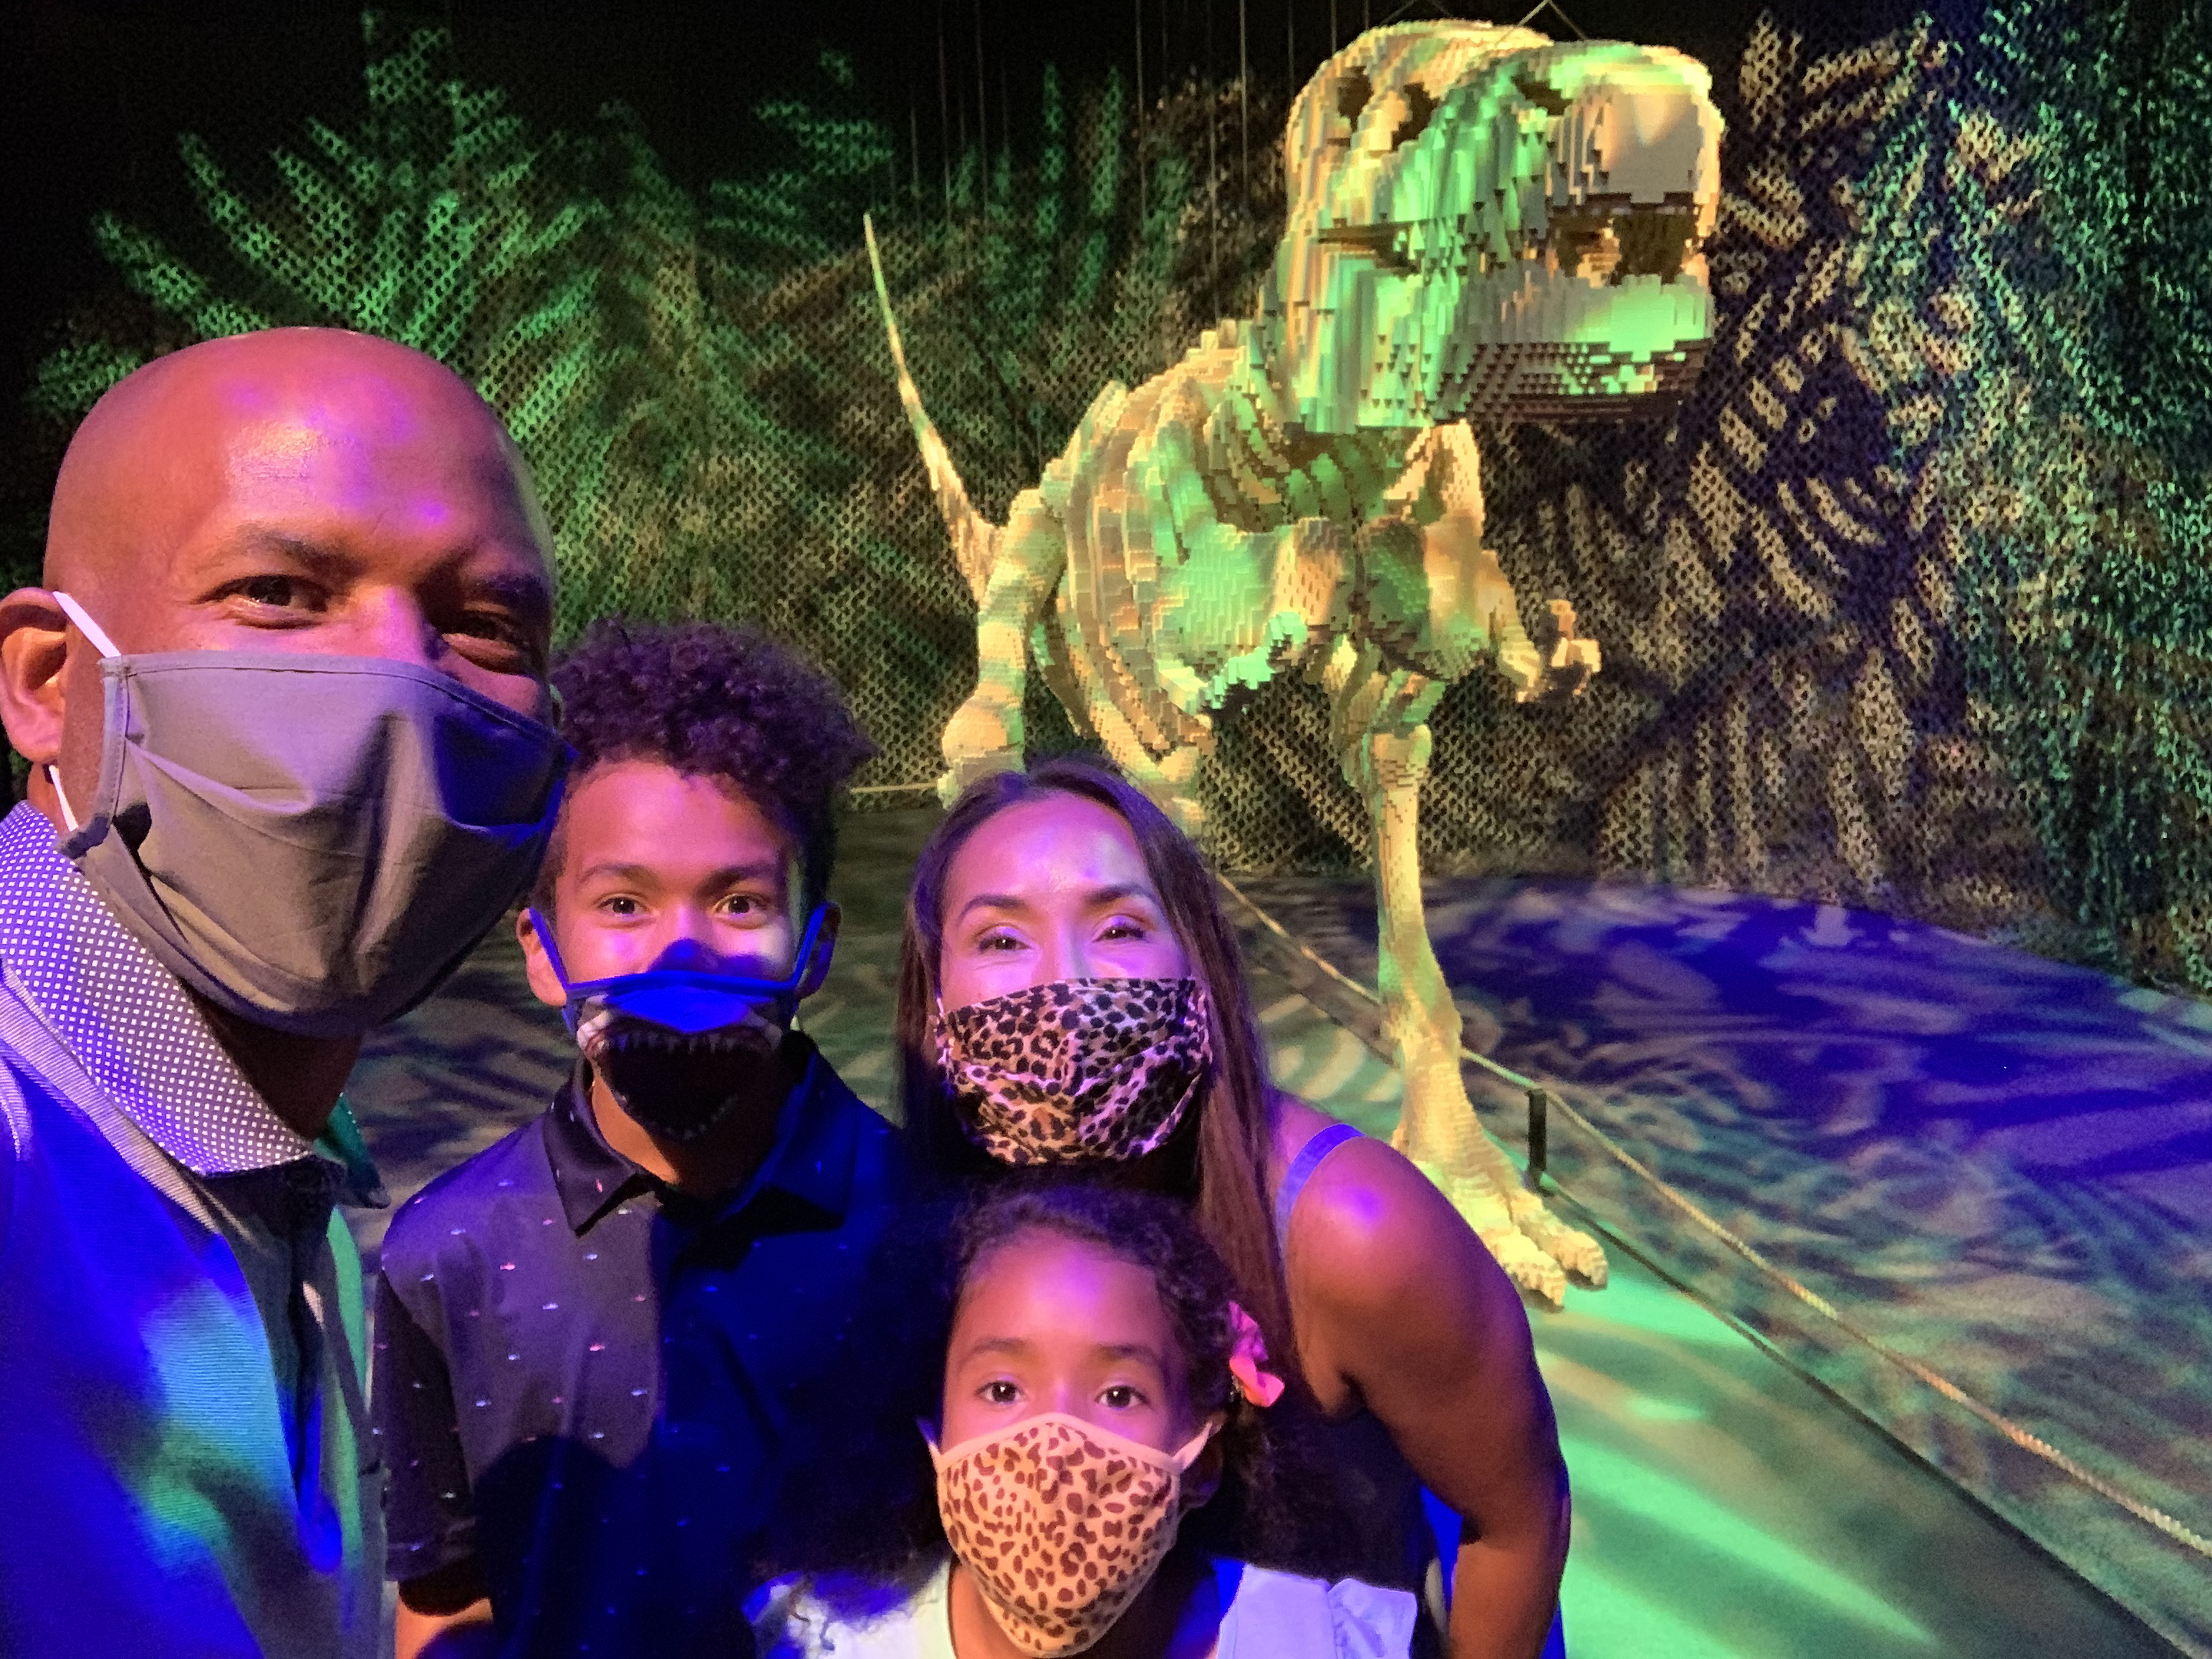 Diverse family with face masks taking a selfie in front of T-Rex sculpture in The Art of the Brick exhibition